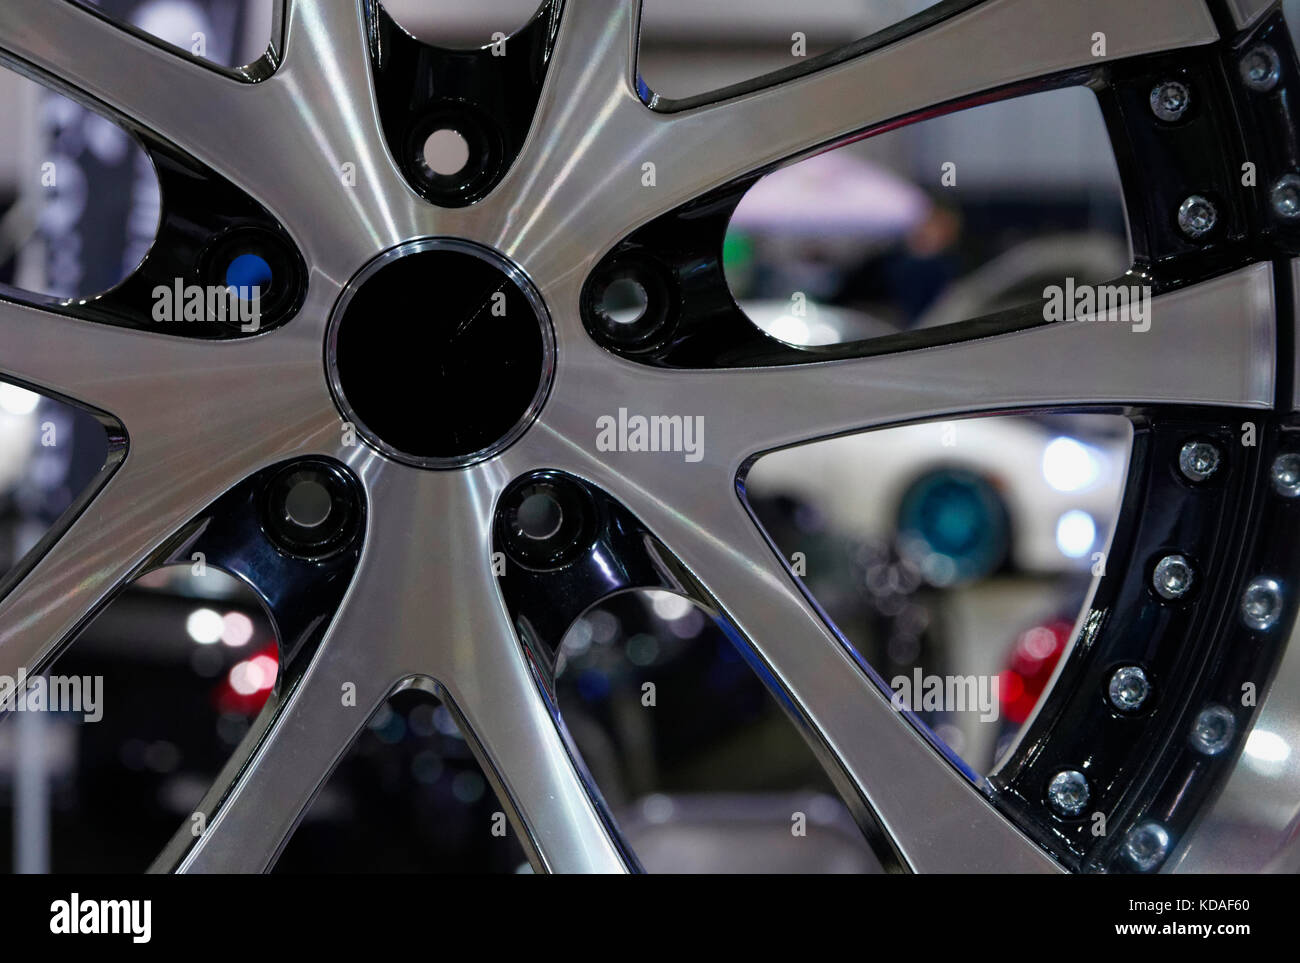 Custom metal wheels with black trim on display at a car show. - Stock Image